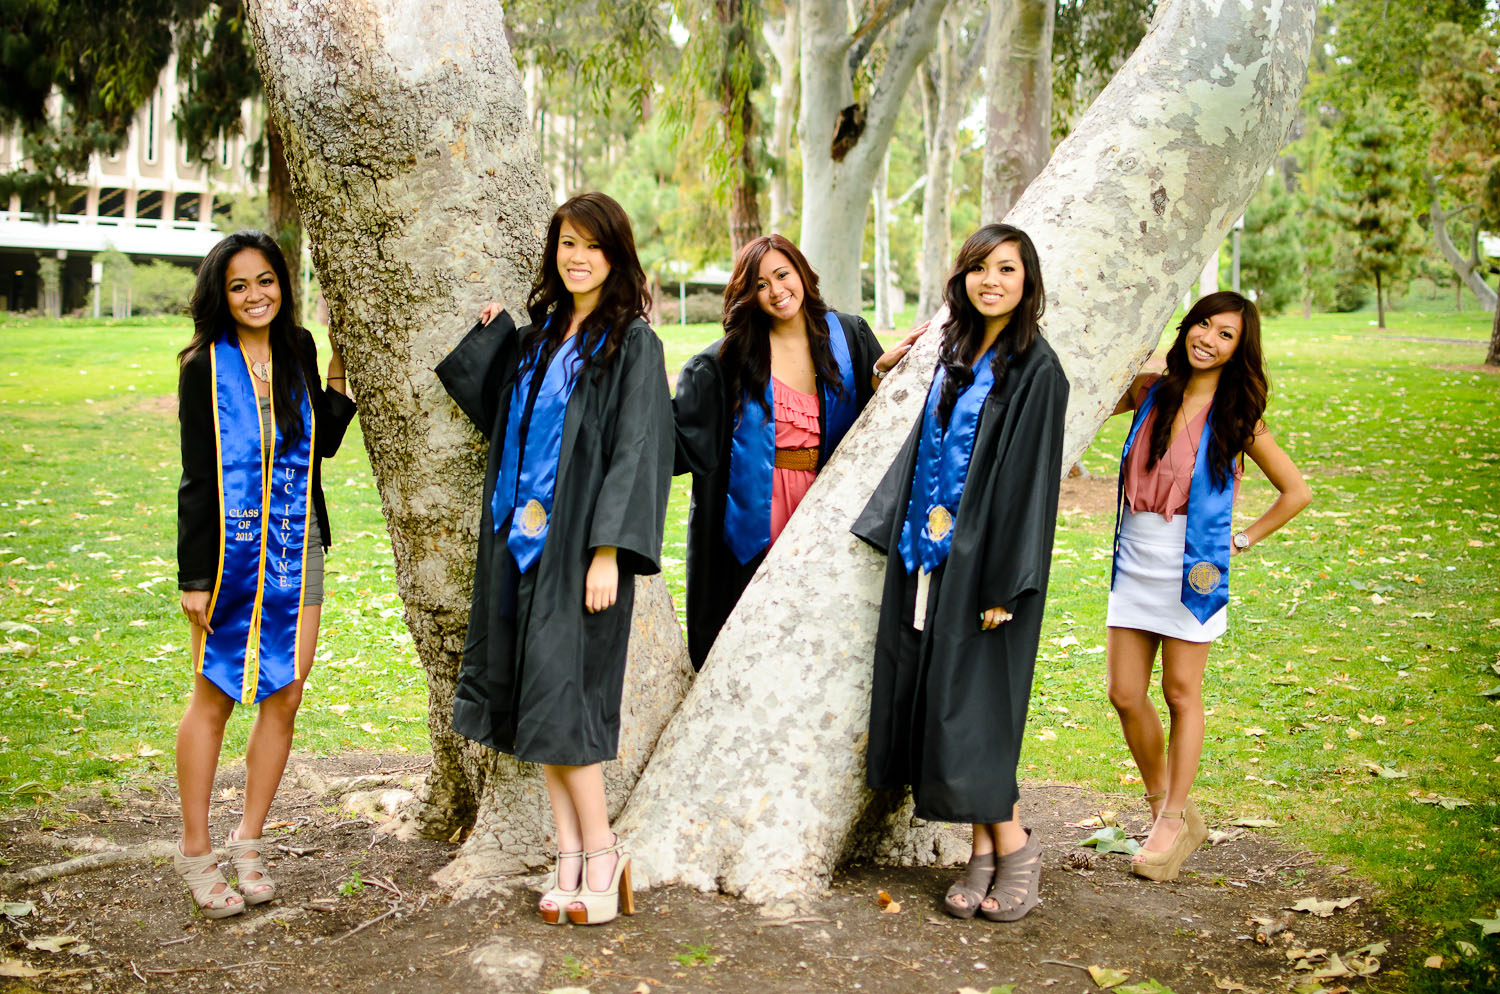 Bryan Miraflor Photography-Graduation Photoshoot-0134.jpg